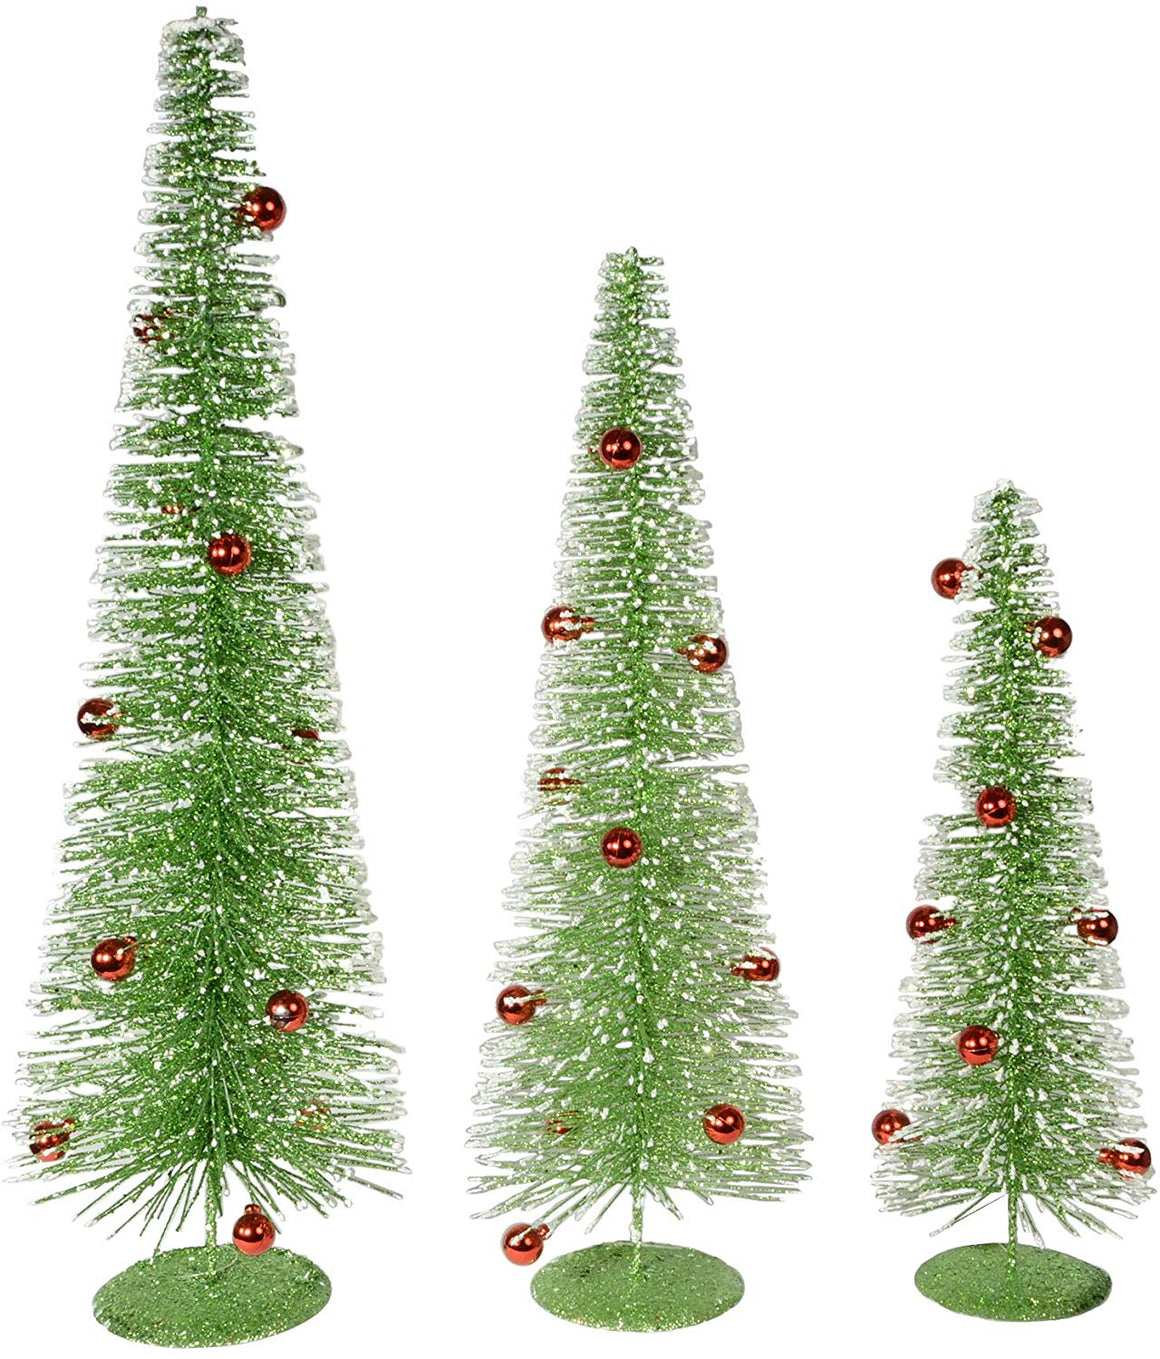 Set of 3 Green Sparkled Christmas Bottle Brush Trees with Red Ornaments, 16, 20 and 24 Inches High